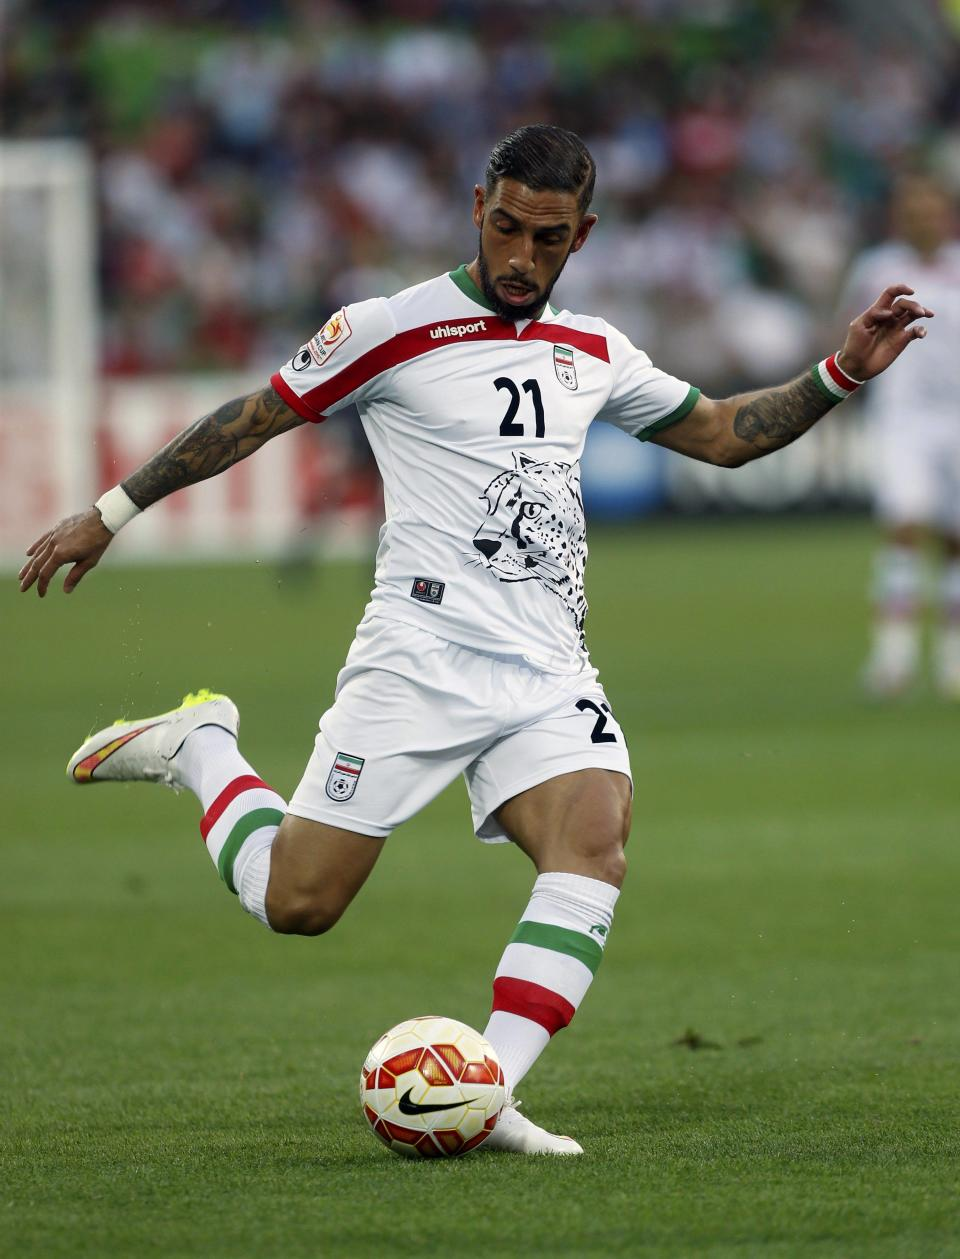 Iran's Ashkan Dejagah kicks the ball during their Asian Cup Group C soccer match against Bahrain at the Rectangular stadium in Melbourne January 11, 2015. REUTERS/Brandon Malone (AUSTRALIA - Tags: SOCCER SPORT)